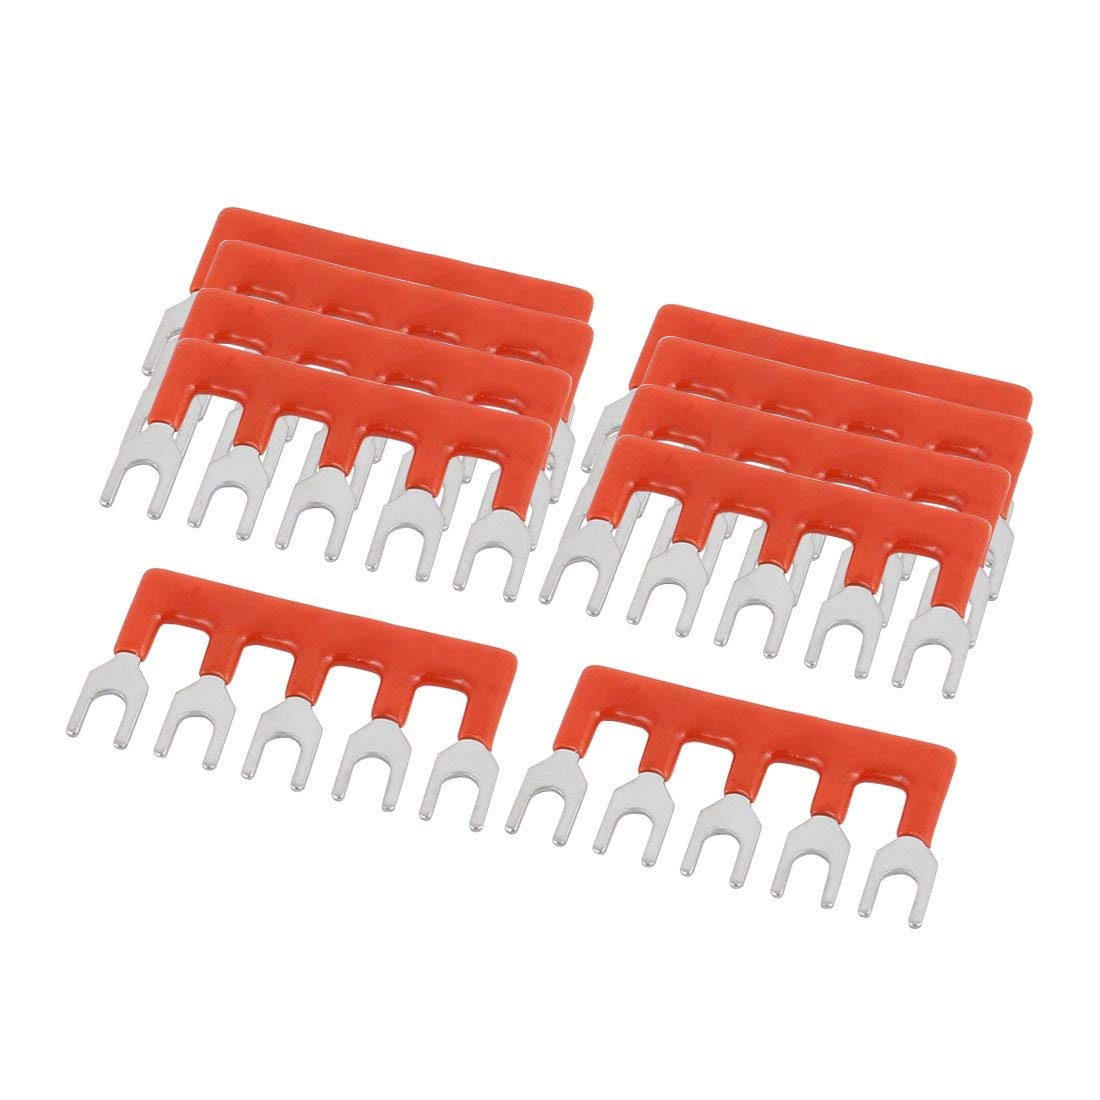 uxcell 10PCS 600V 15A 5mm Pitch 5P PCB Terminal Block Connector Strip Barrier Red